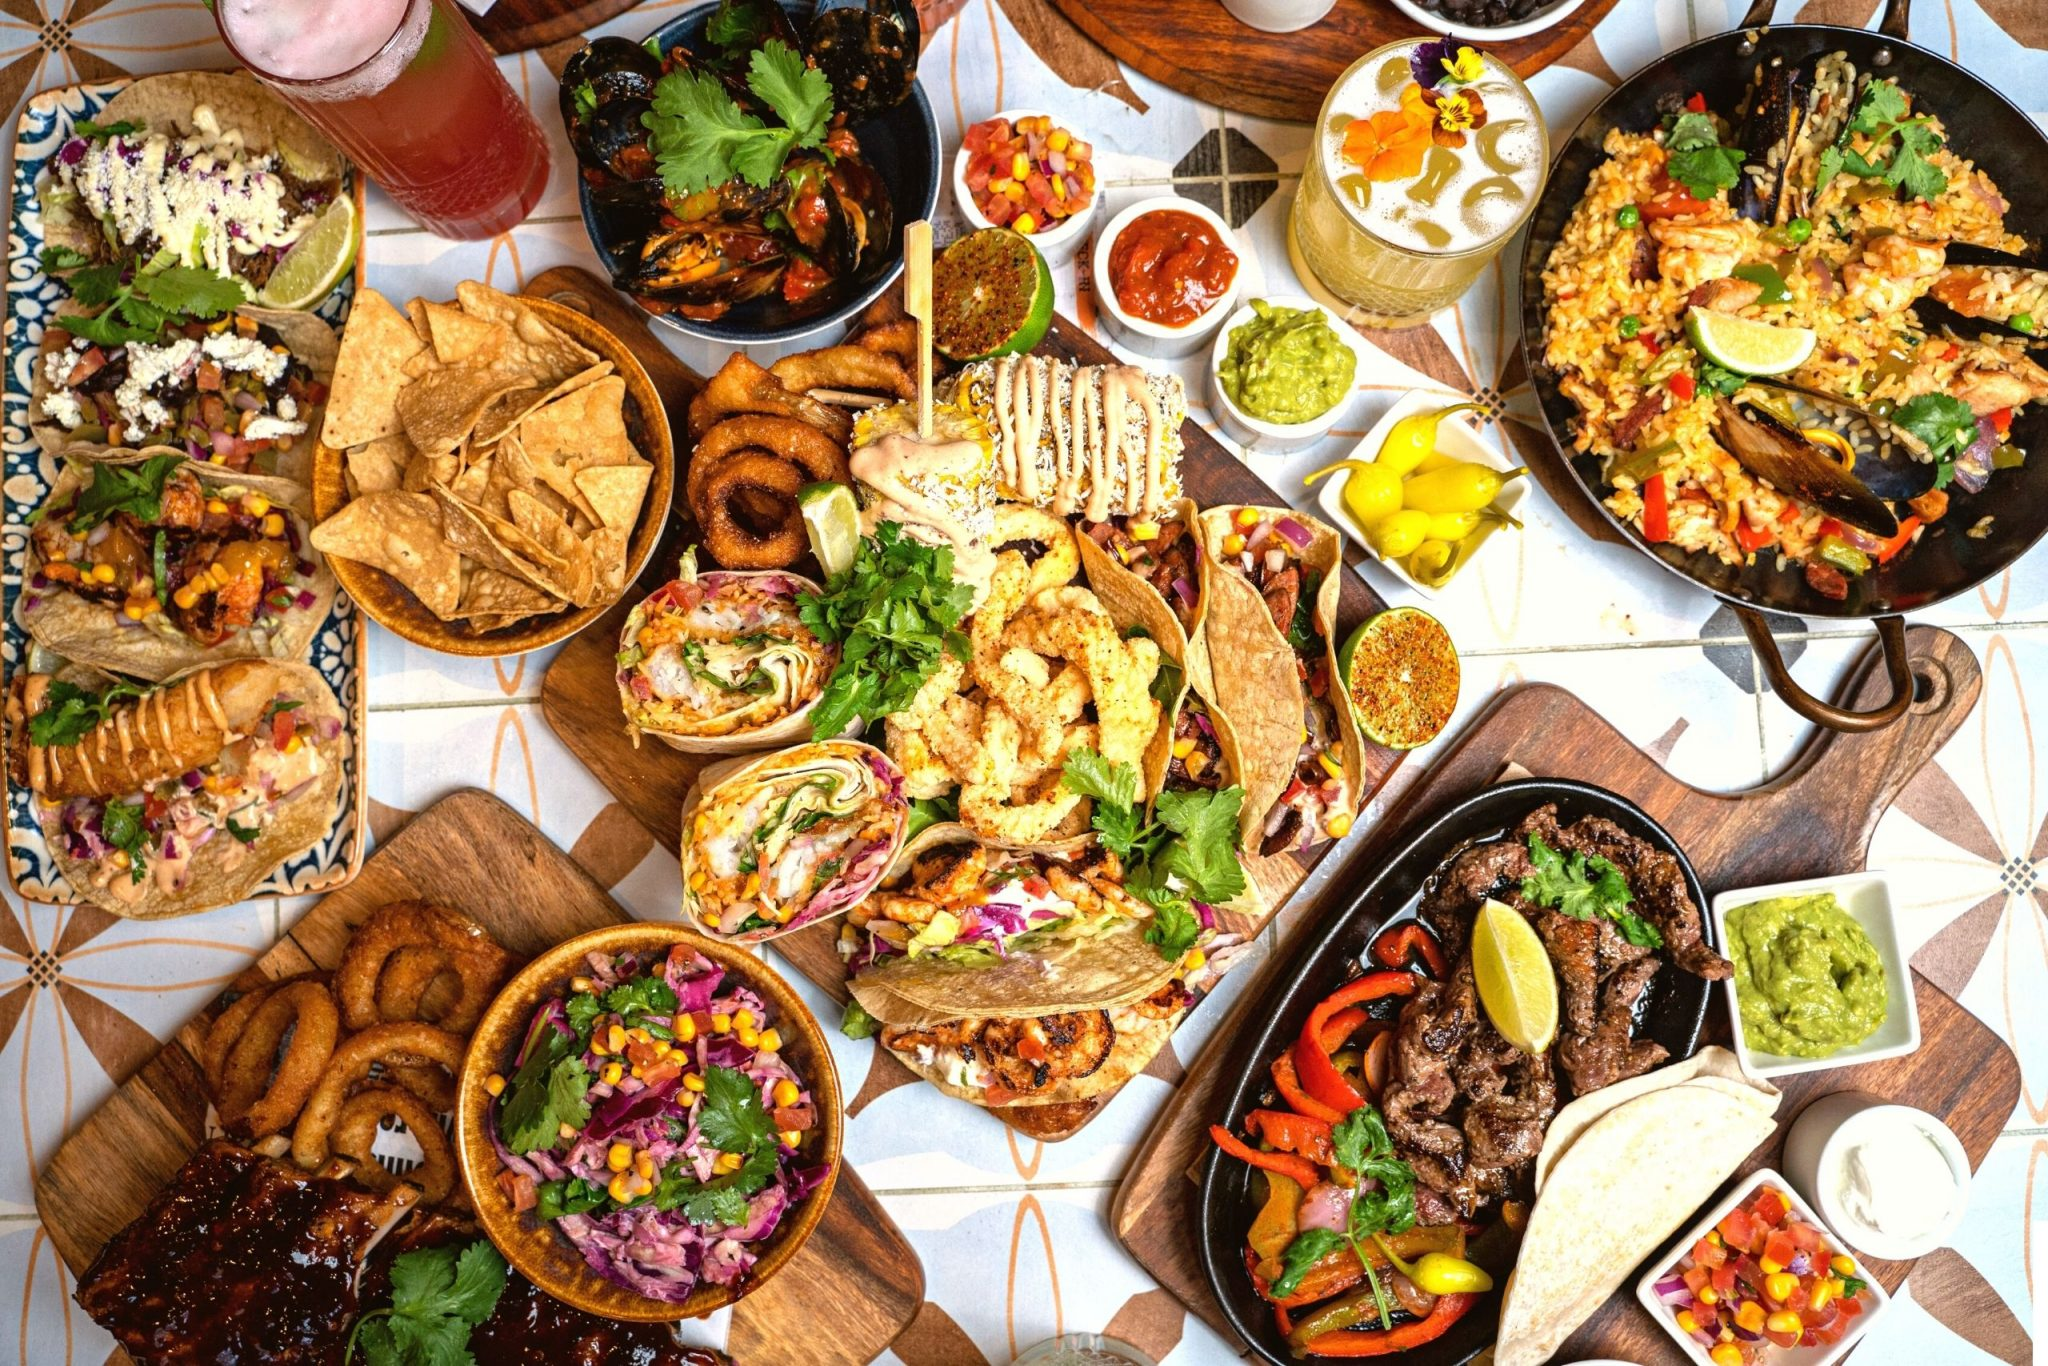 Mexican Food: A selection of La Cabra food served on a table